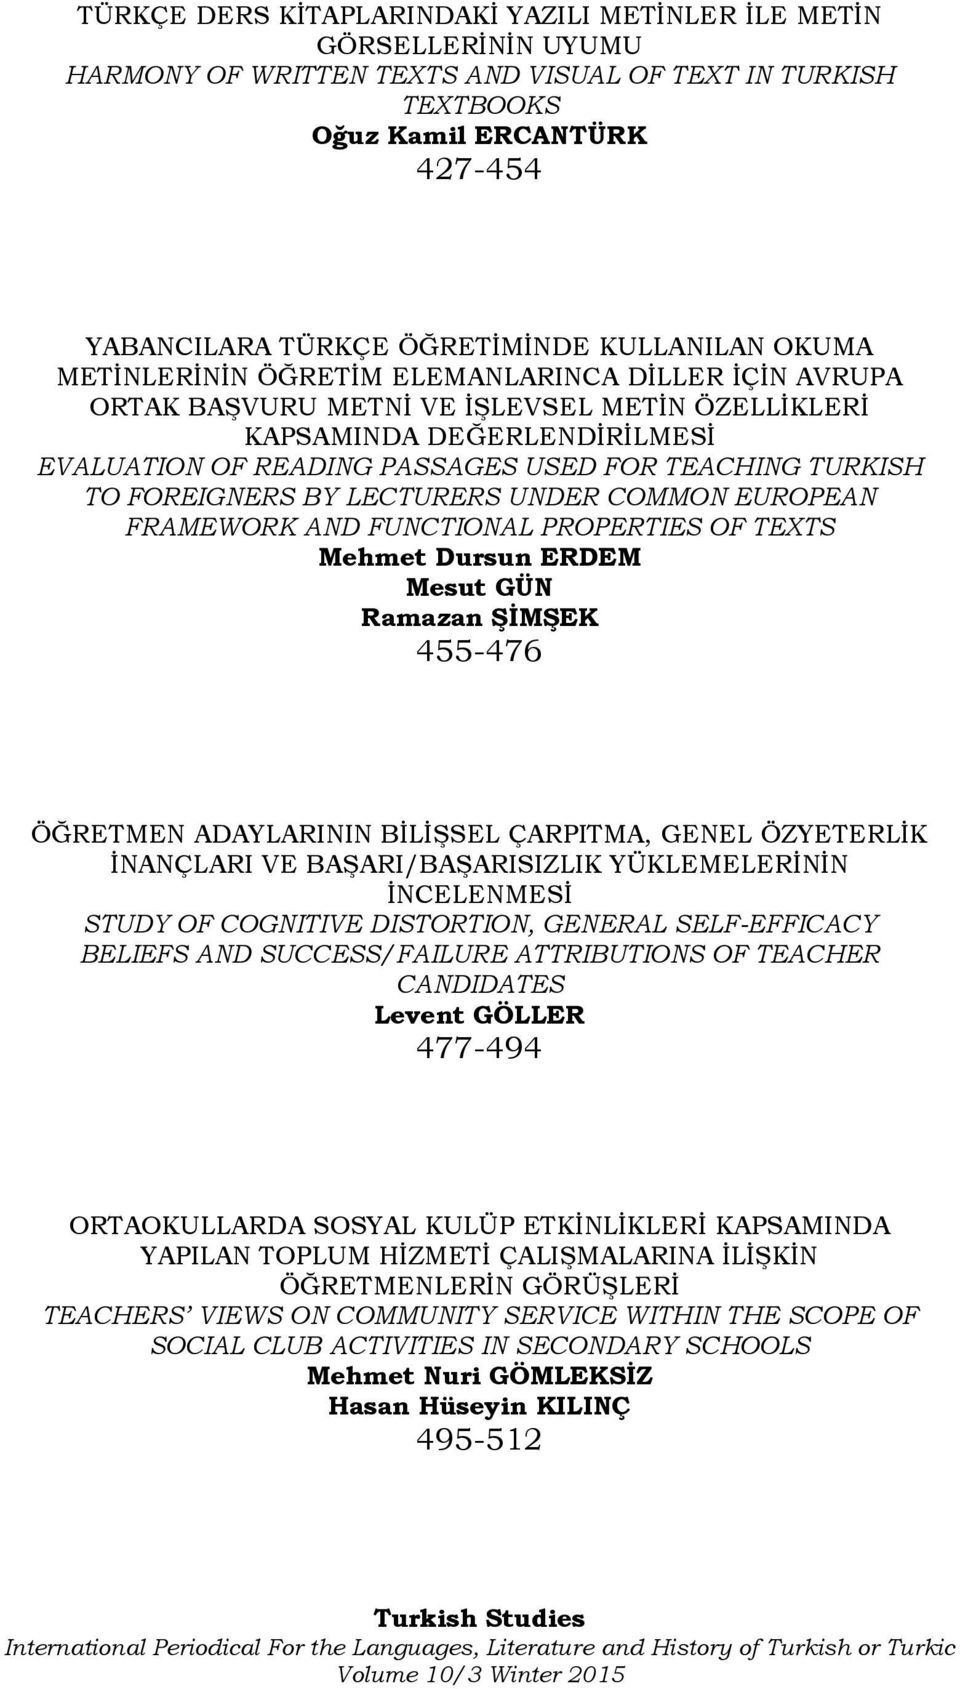 TURKISH TO FOREIGNERS BY LECTURERS UNDER COMMON EUROPEAN FRAMEWORK AND FUNCTIONAL PROPERTIES OF TEXTS Mehmet Dursun ERDEM Mesut GÜN Ramazan ŞİMŞEK 455-476 ÖĞRETMEN ADAYLARININ BİLİŞSEL ÇARPITMA,